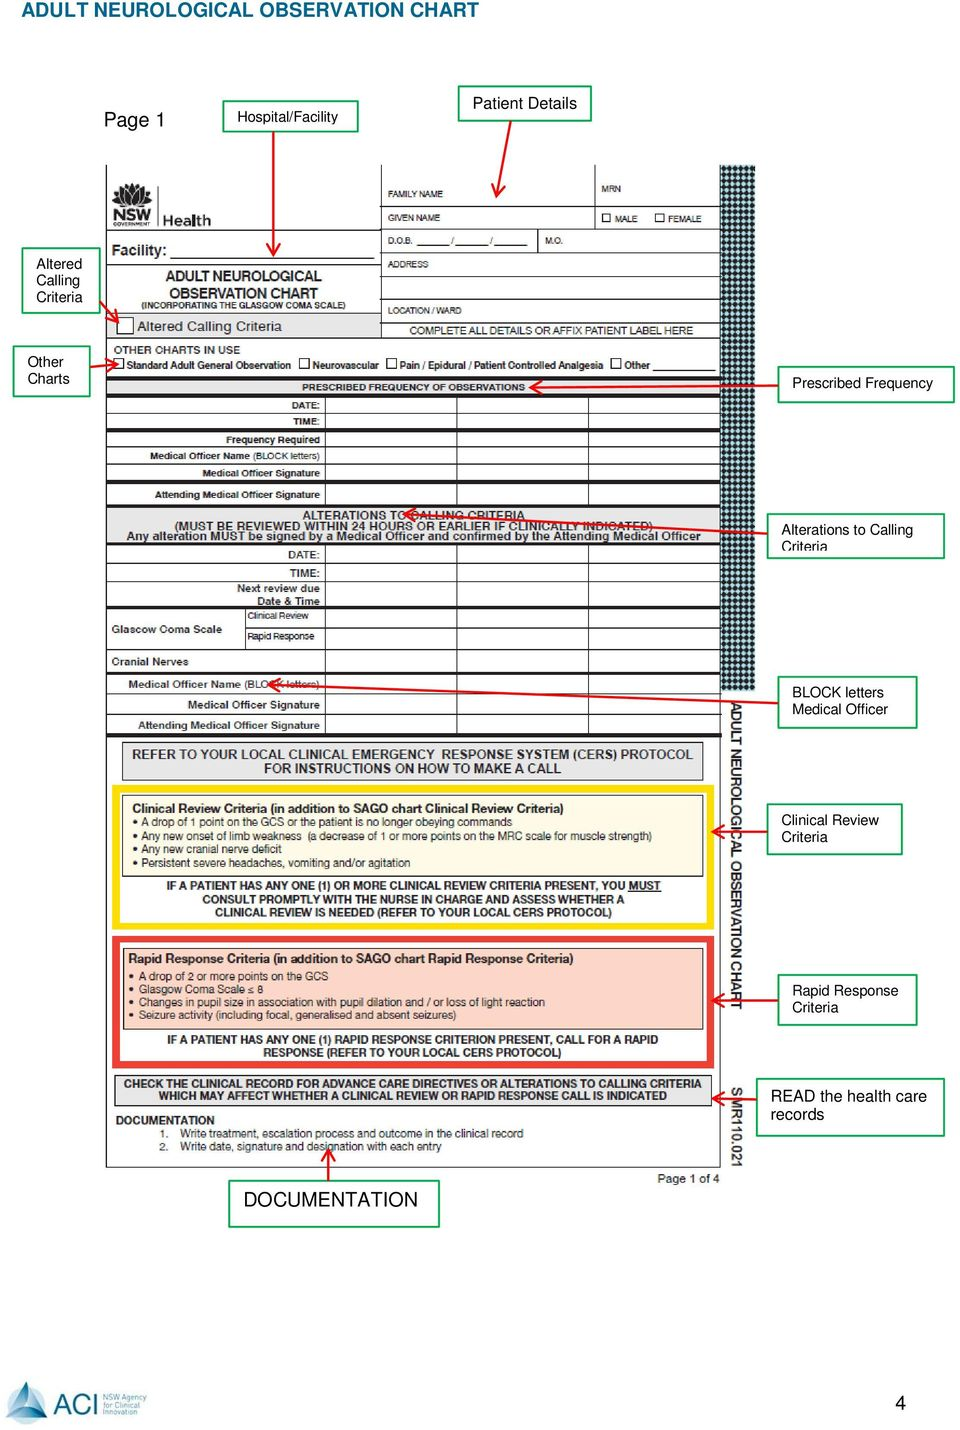 ADULT NEUROLOGICAL OBSERVATION CHART  Education Package